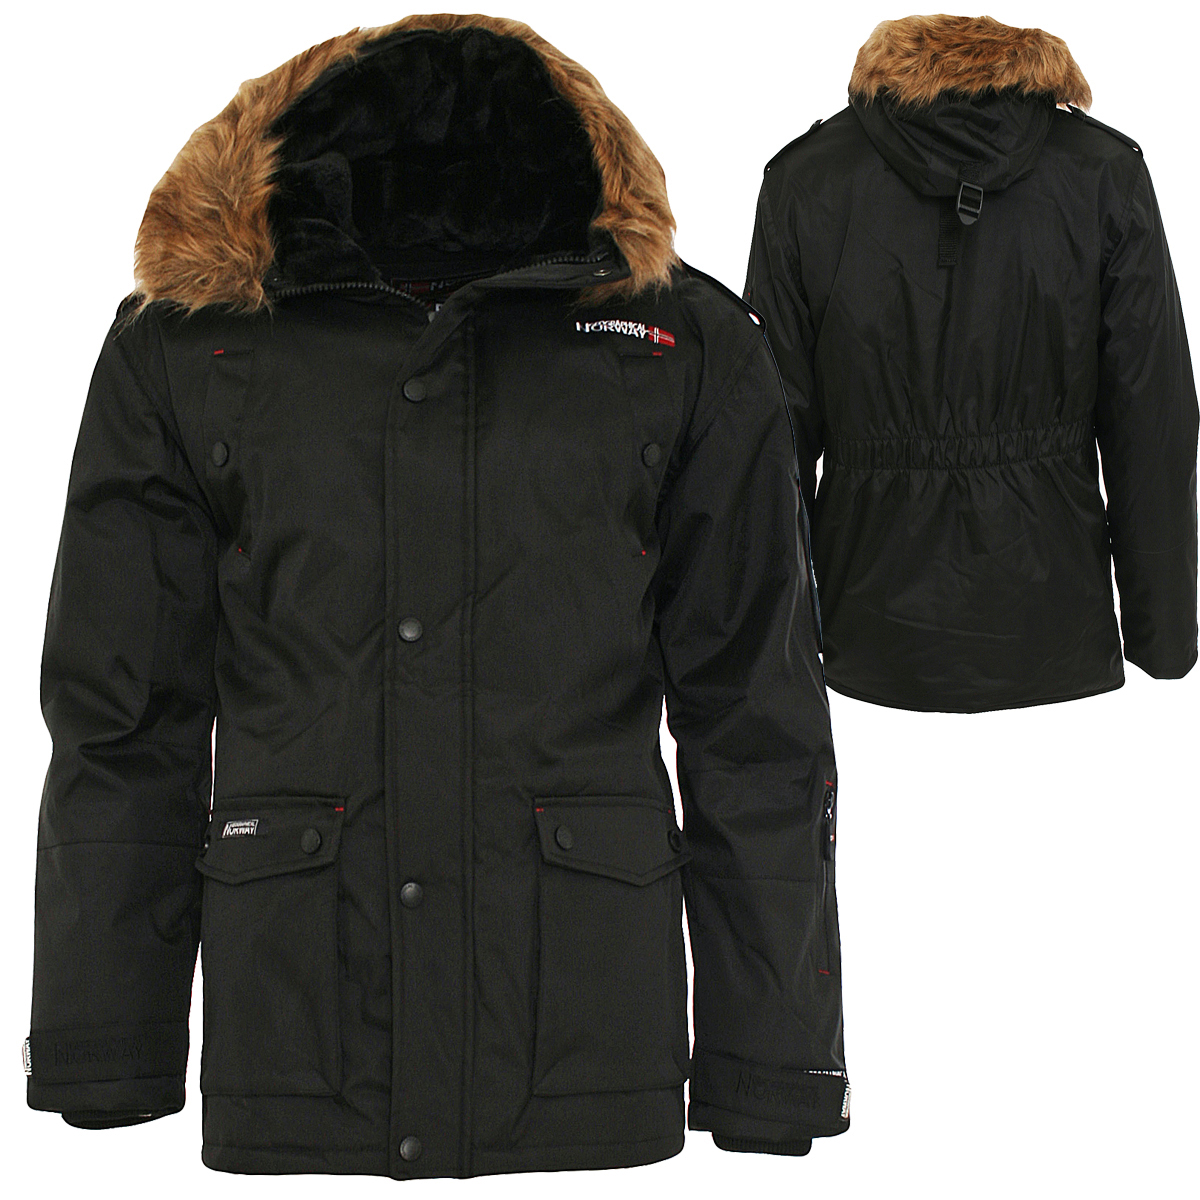 geographical norway men 39 s winter jacket blister longman winter parka jacket ebay. Black Bedroom Furniture Sets. Home Design Ideas